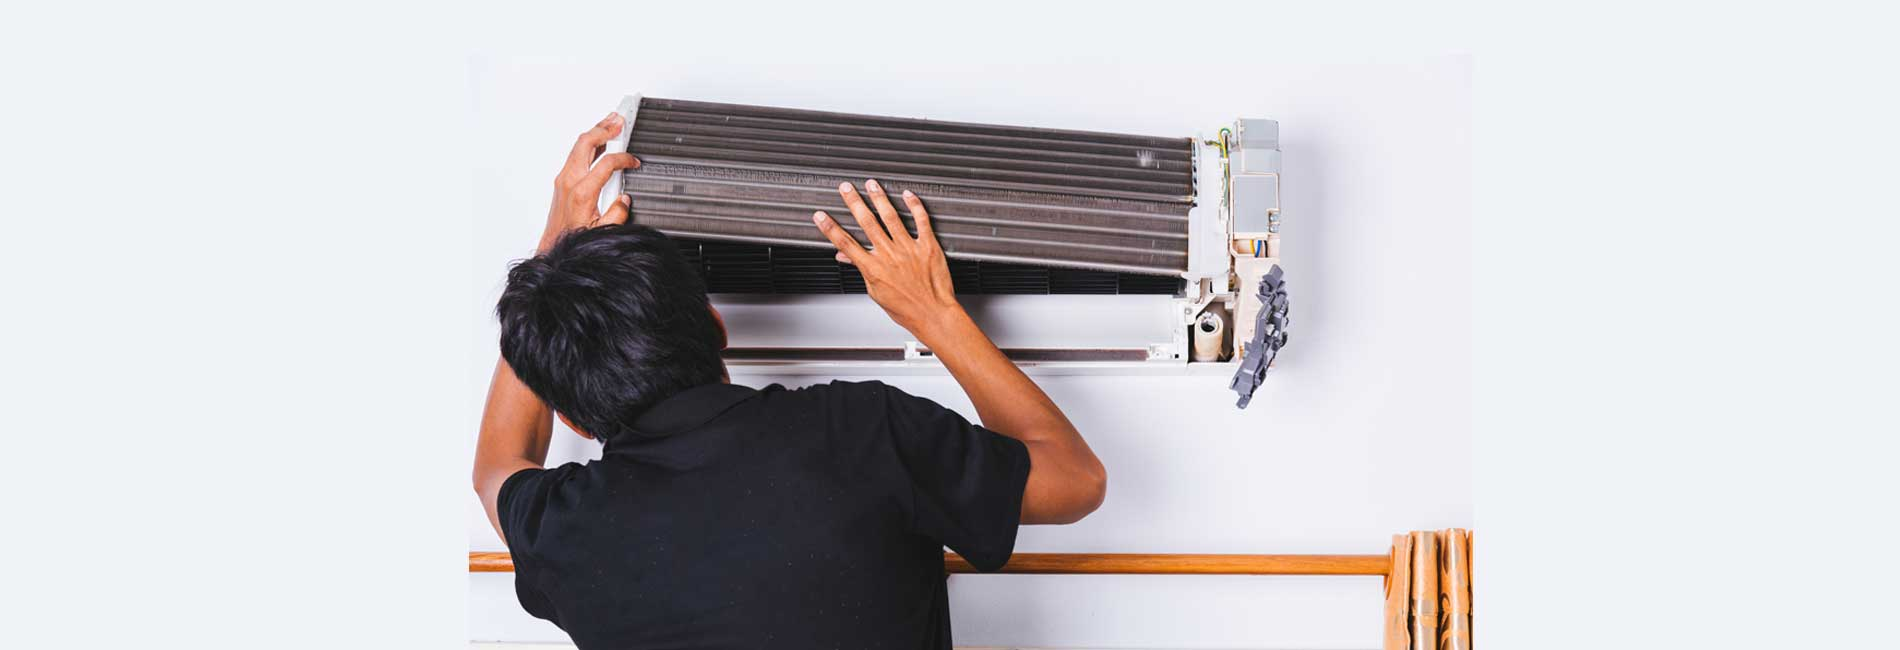 Hitachi AC Uninstallation and Installation in s.kolathur